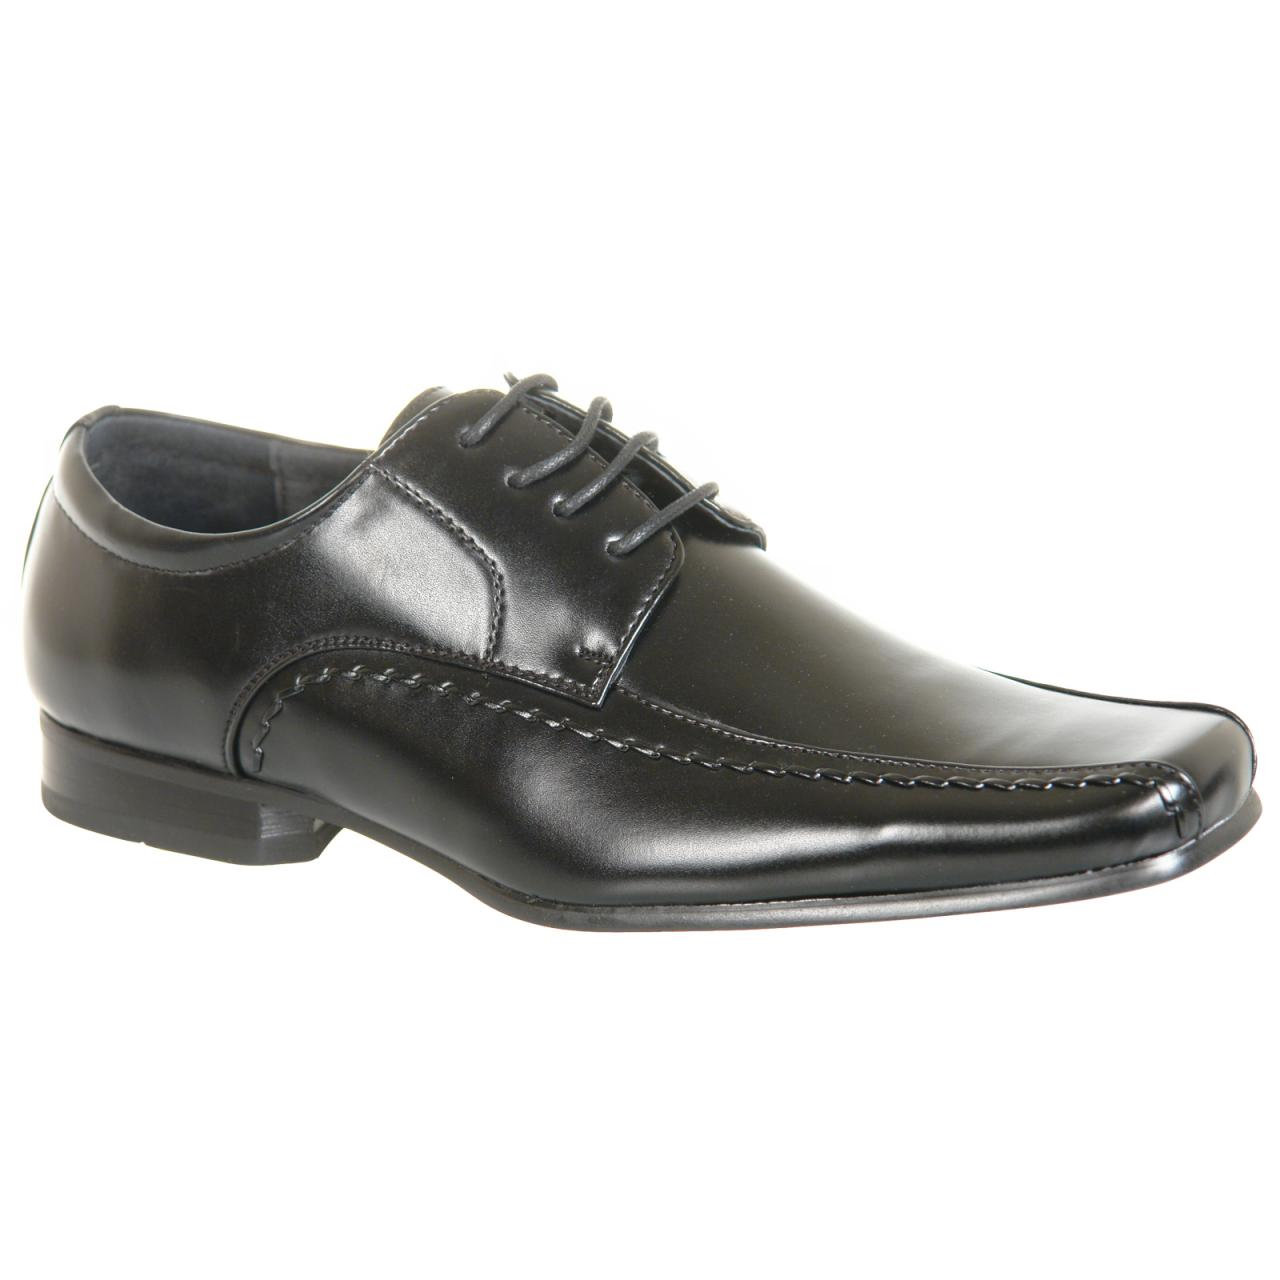 Mens Lace Up Fashion Shoes in Black or Brown - Images hosted at ...